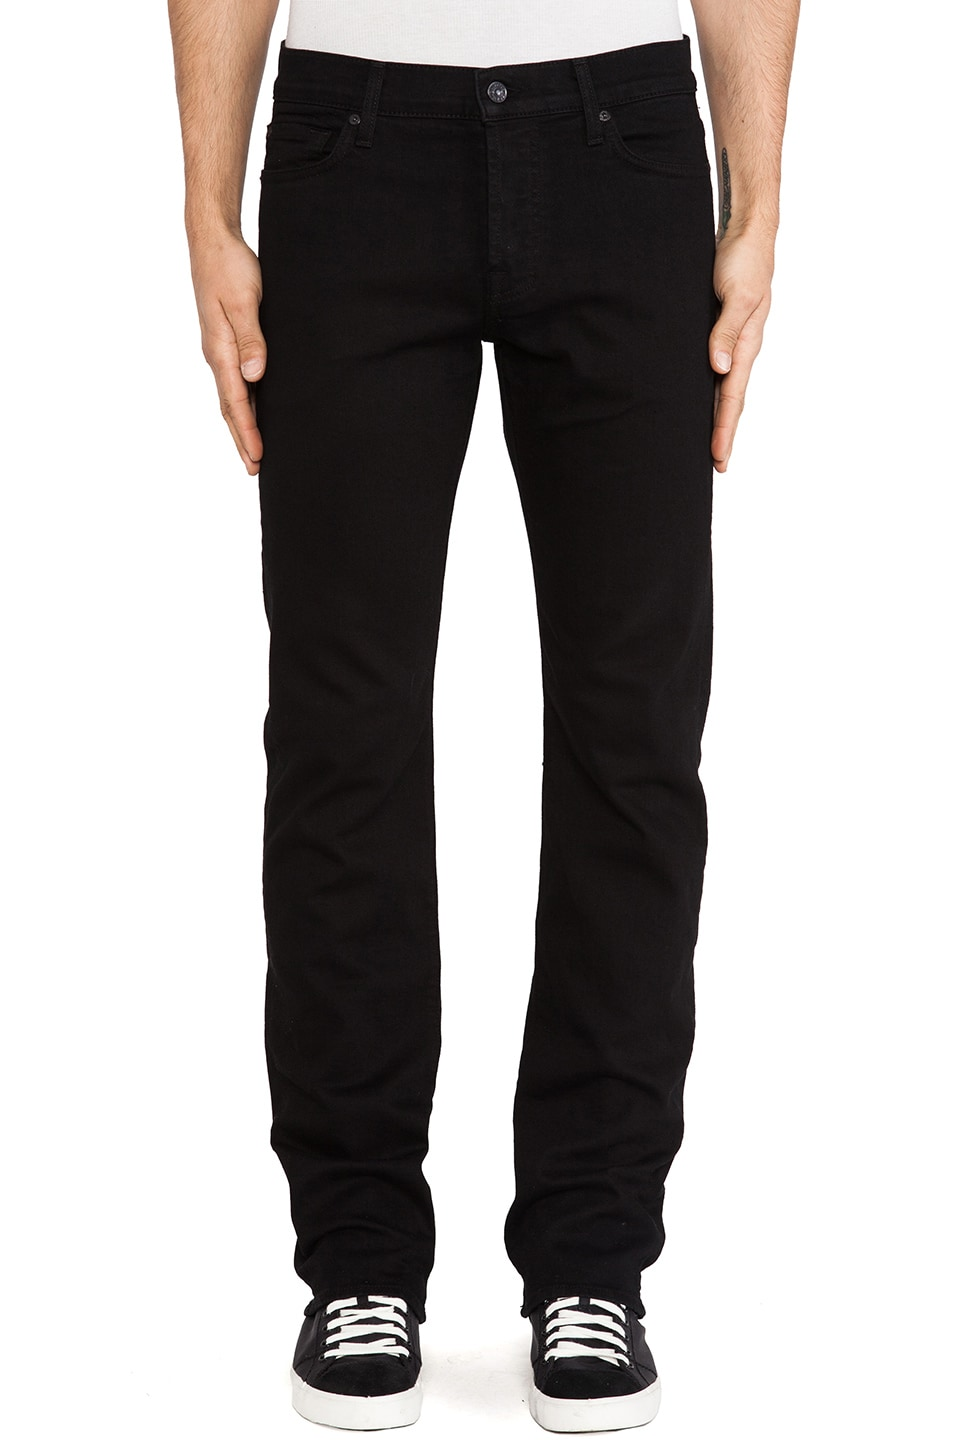 7 For All Mankind Standard in Black Out